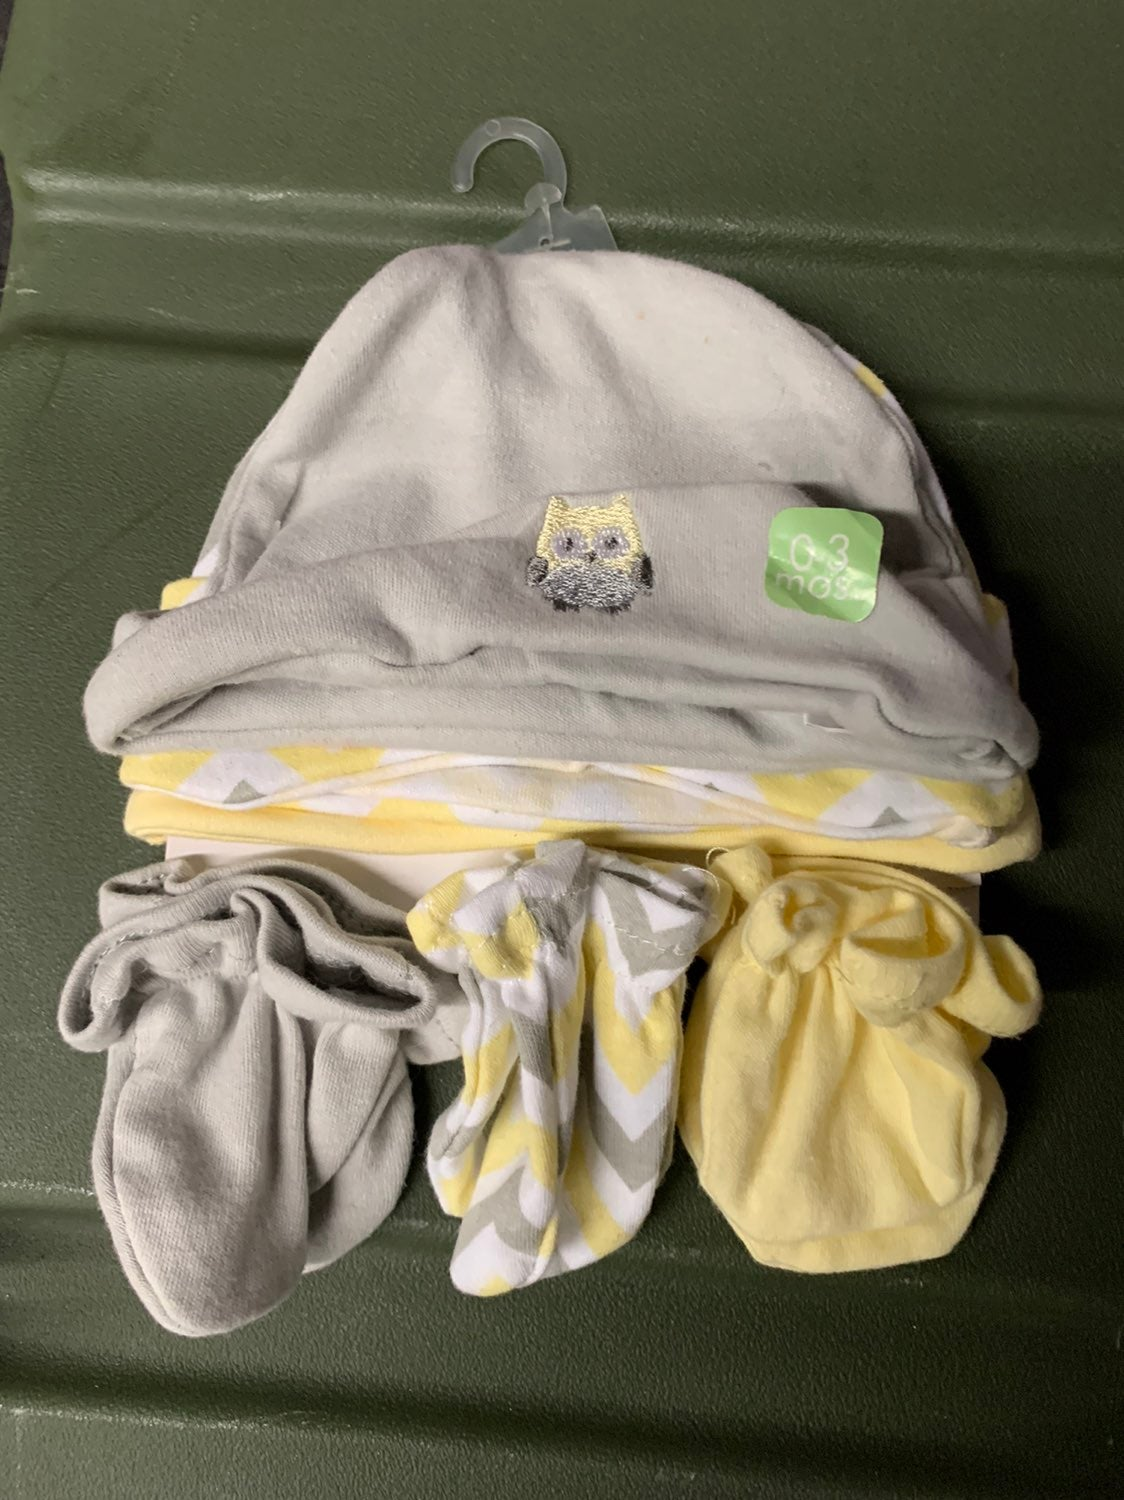 Newborn 0-3 mittens and head covers. 3 o